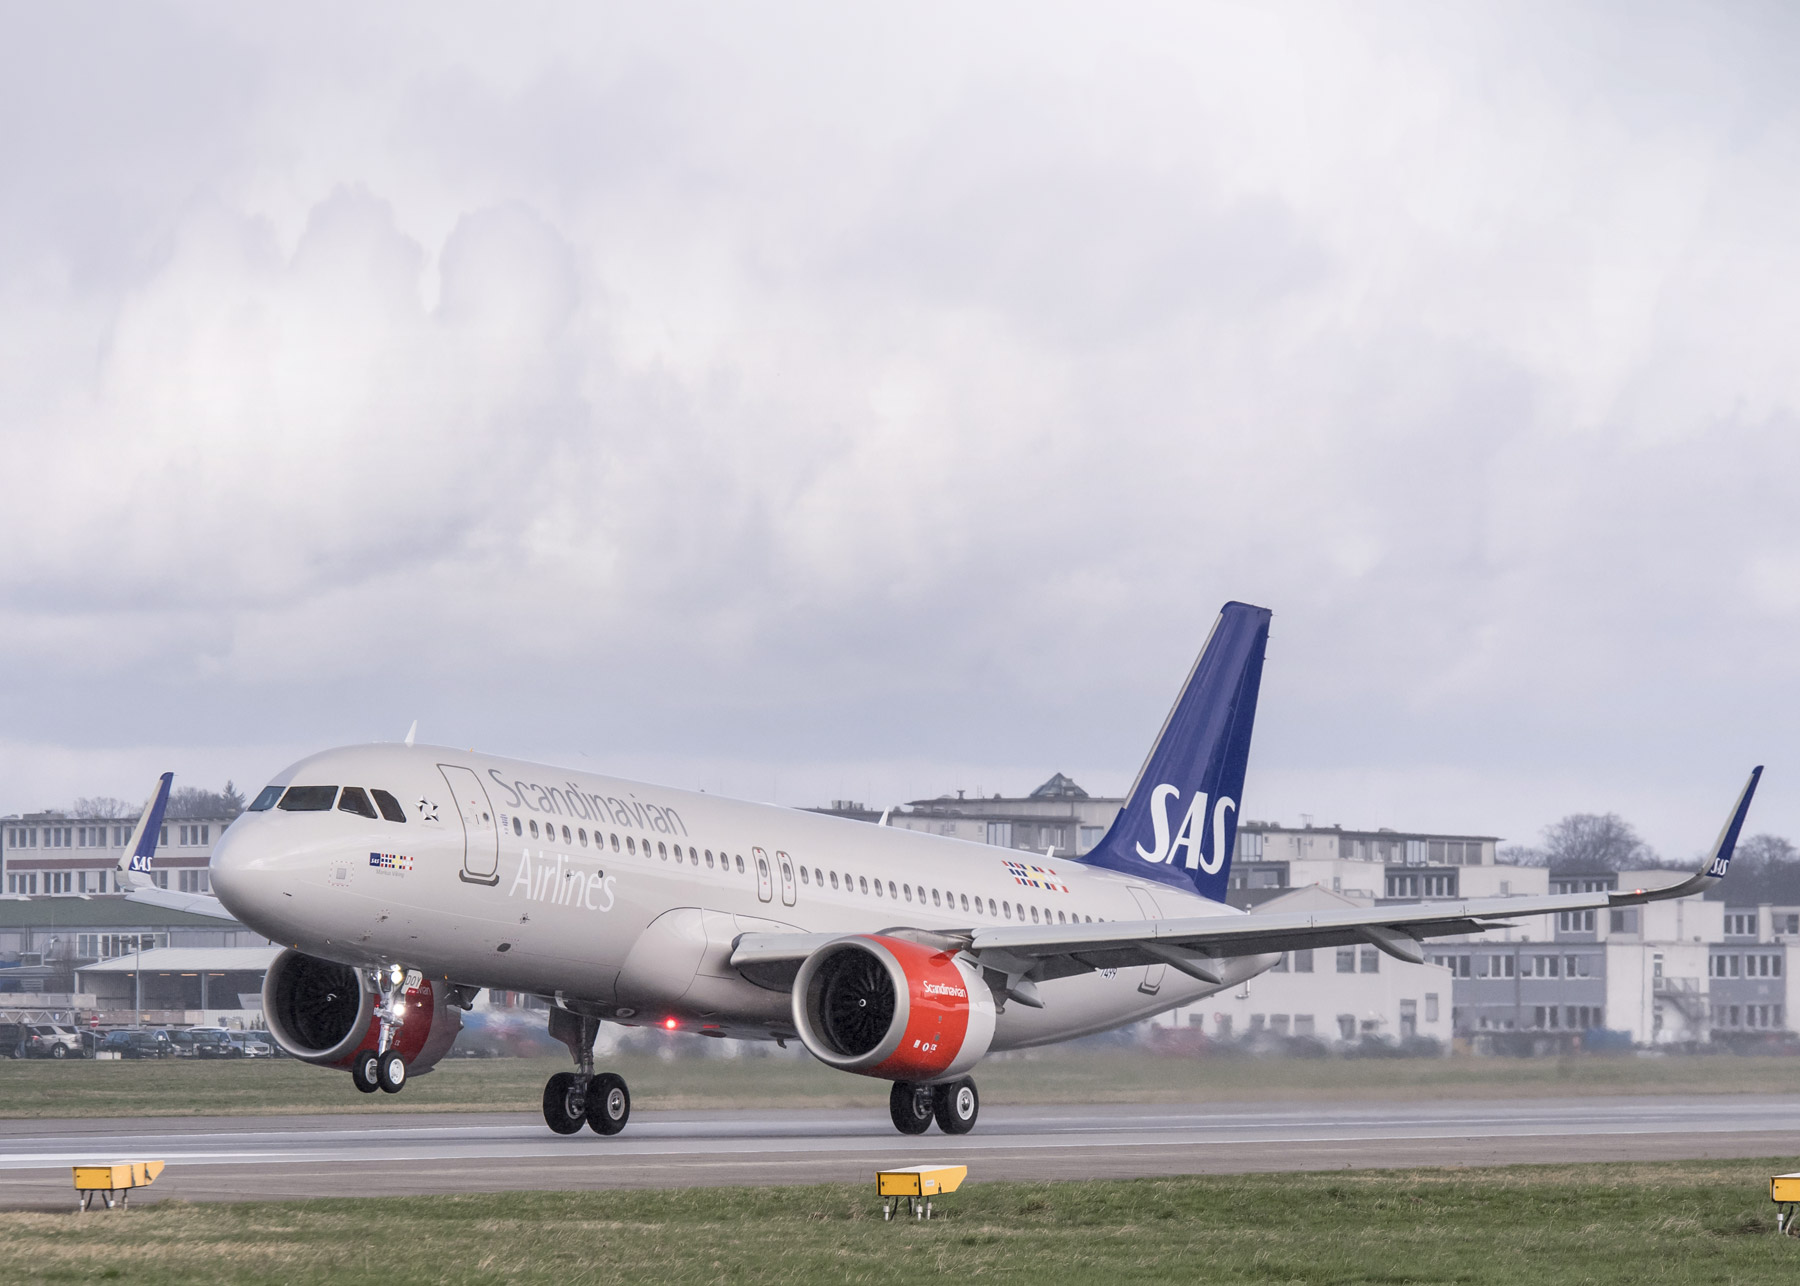 SAS, Airbus, A320neo, order, second, fleet, simplify, aircraft, type